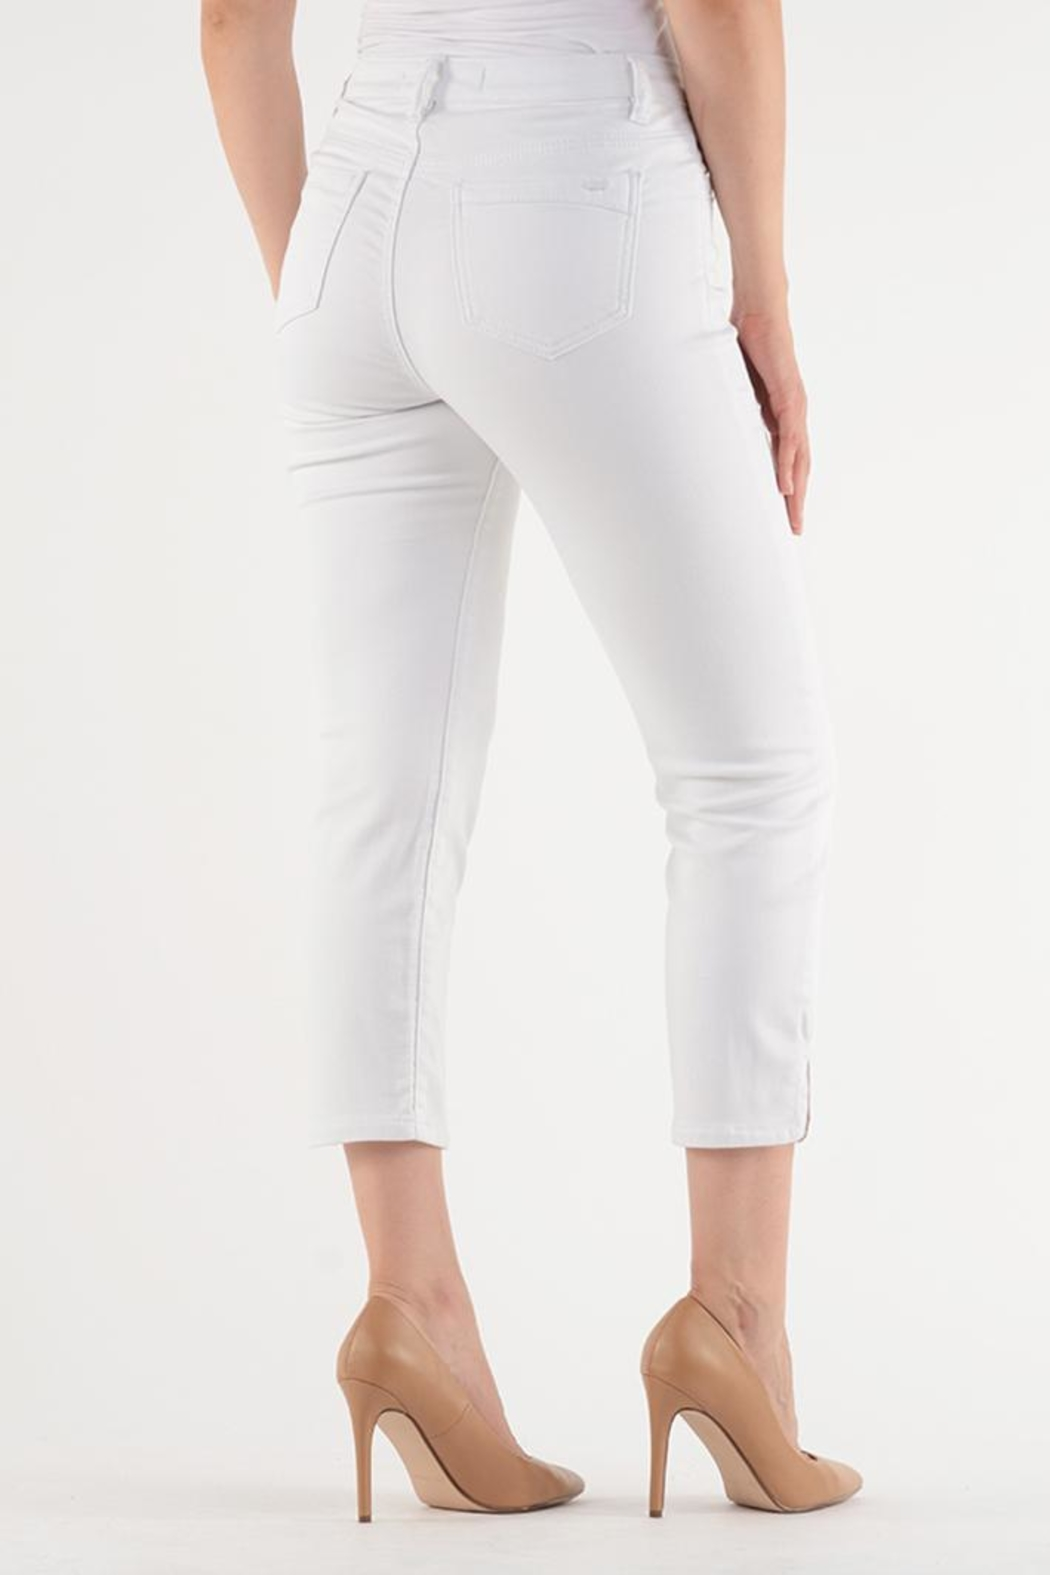 Lois Jeans White Ankle Jean - Front Full Image